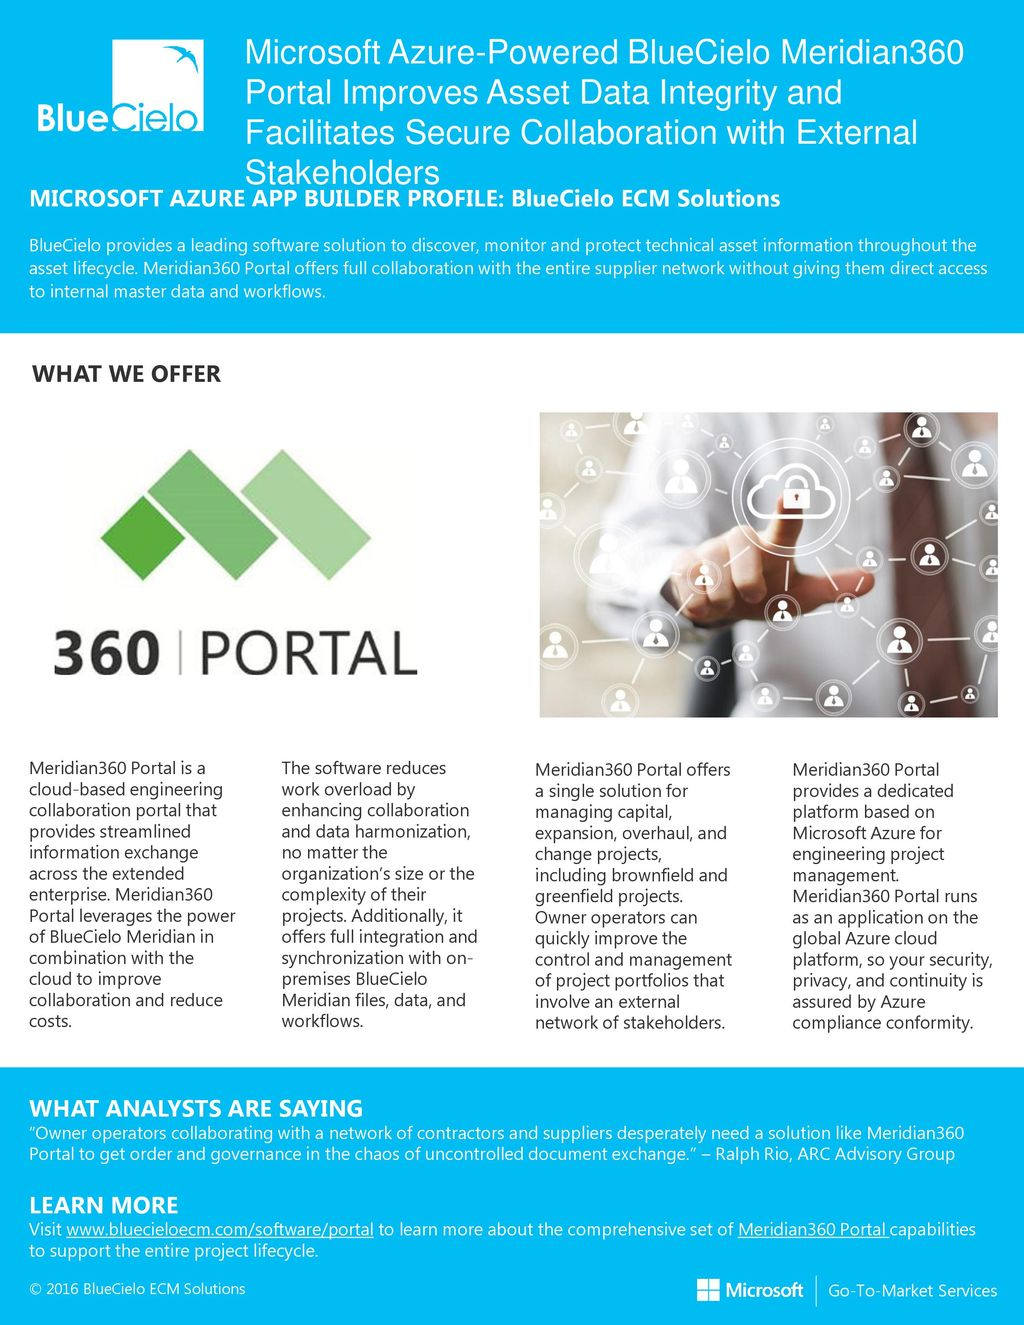 Microsoft Azure-Powered BlueCielo Meridian360 Portal Improves Asset Data Integrity and Facilitates Secure Collaboration with External Stakeholders